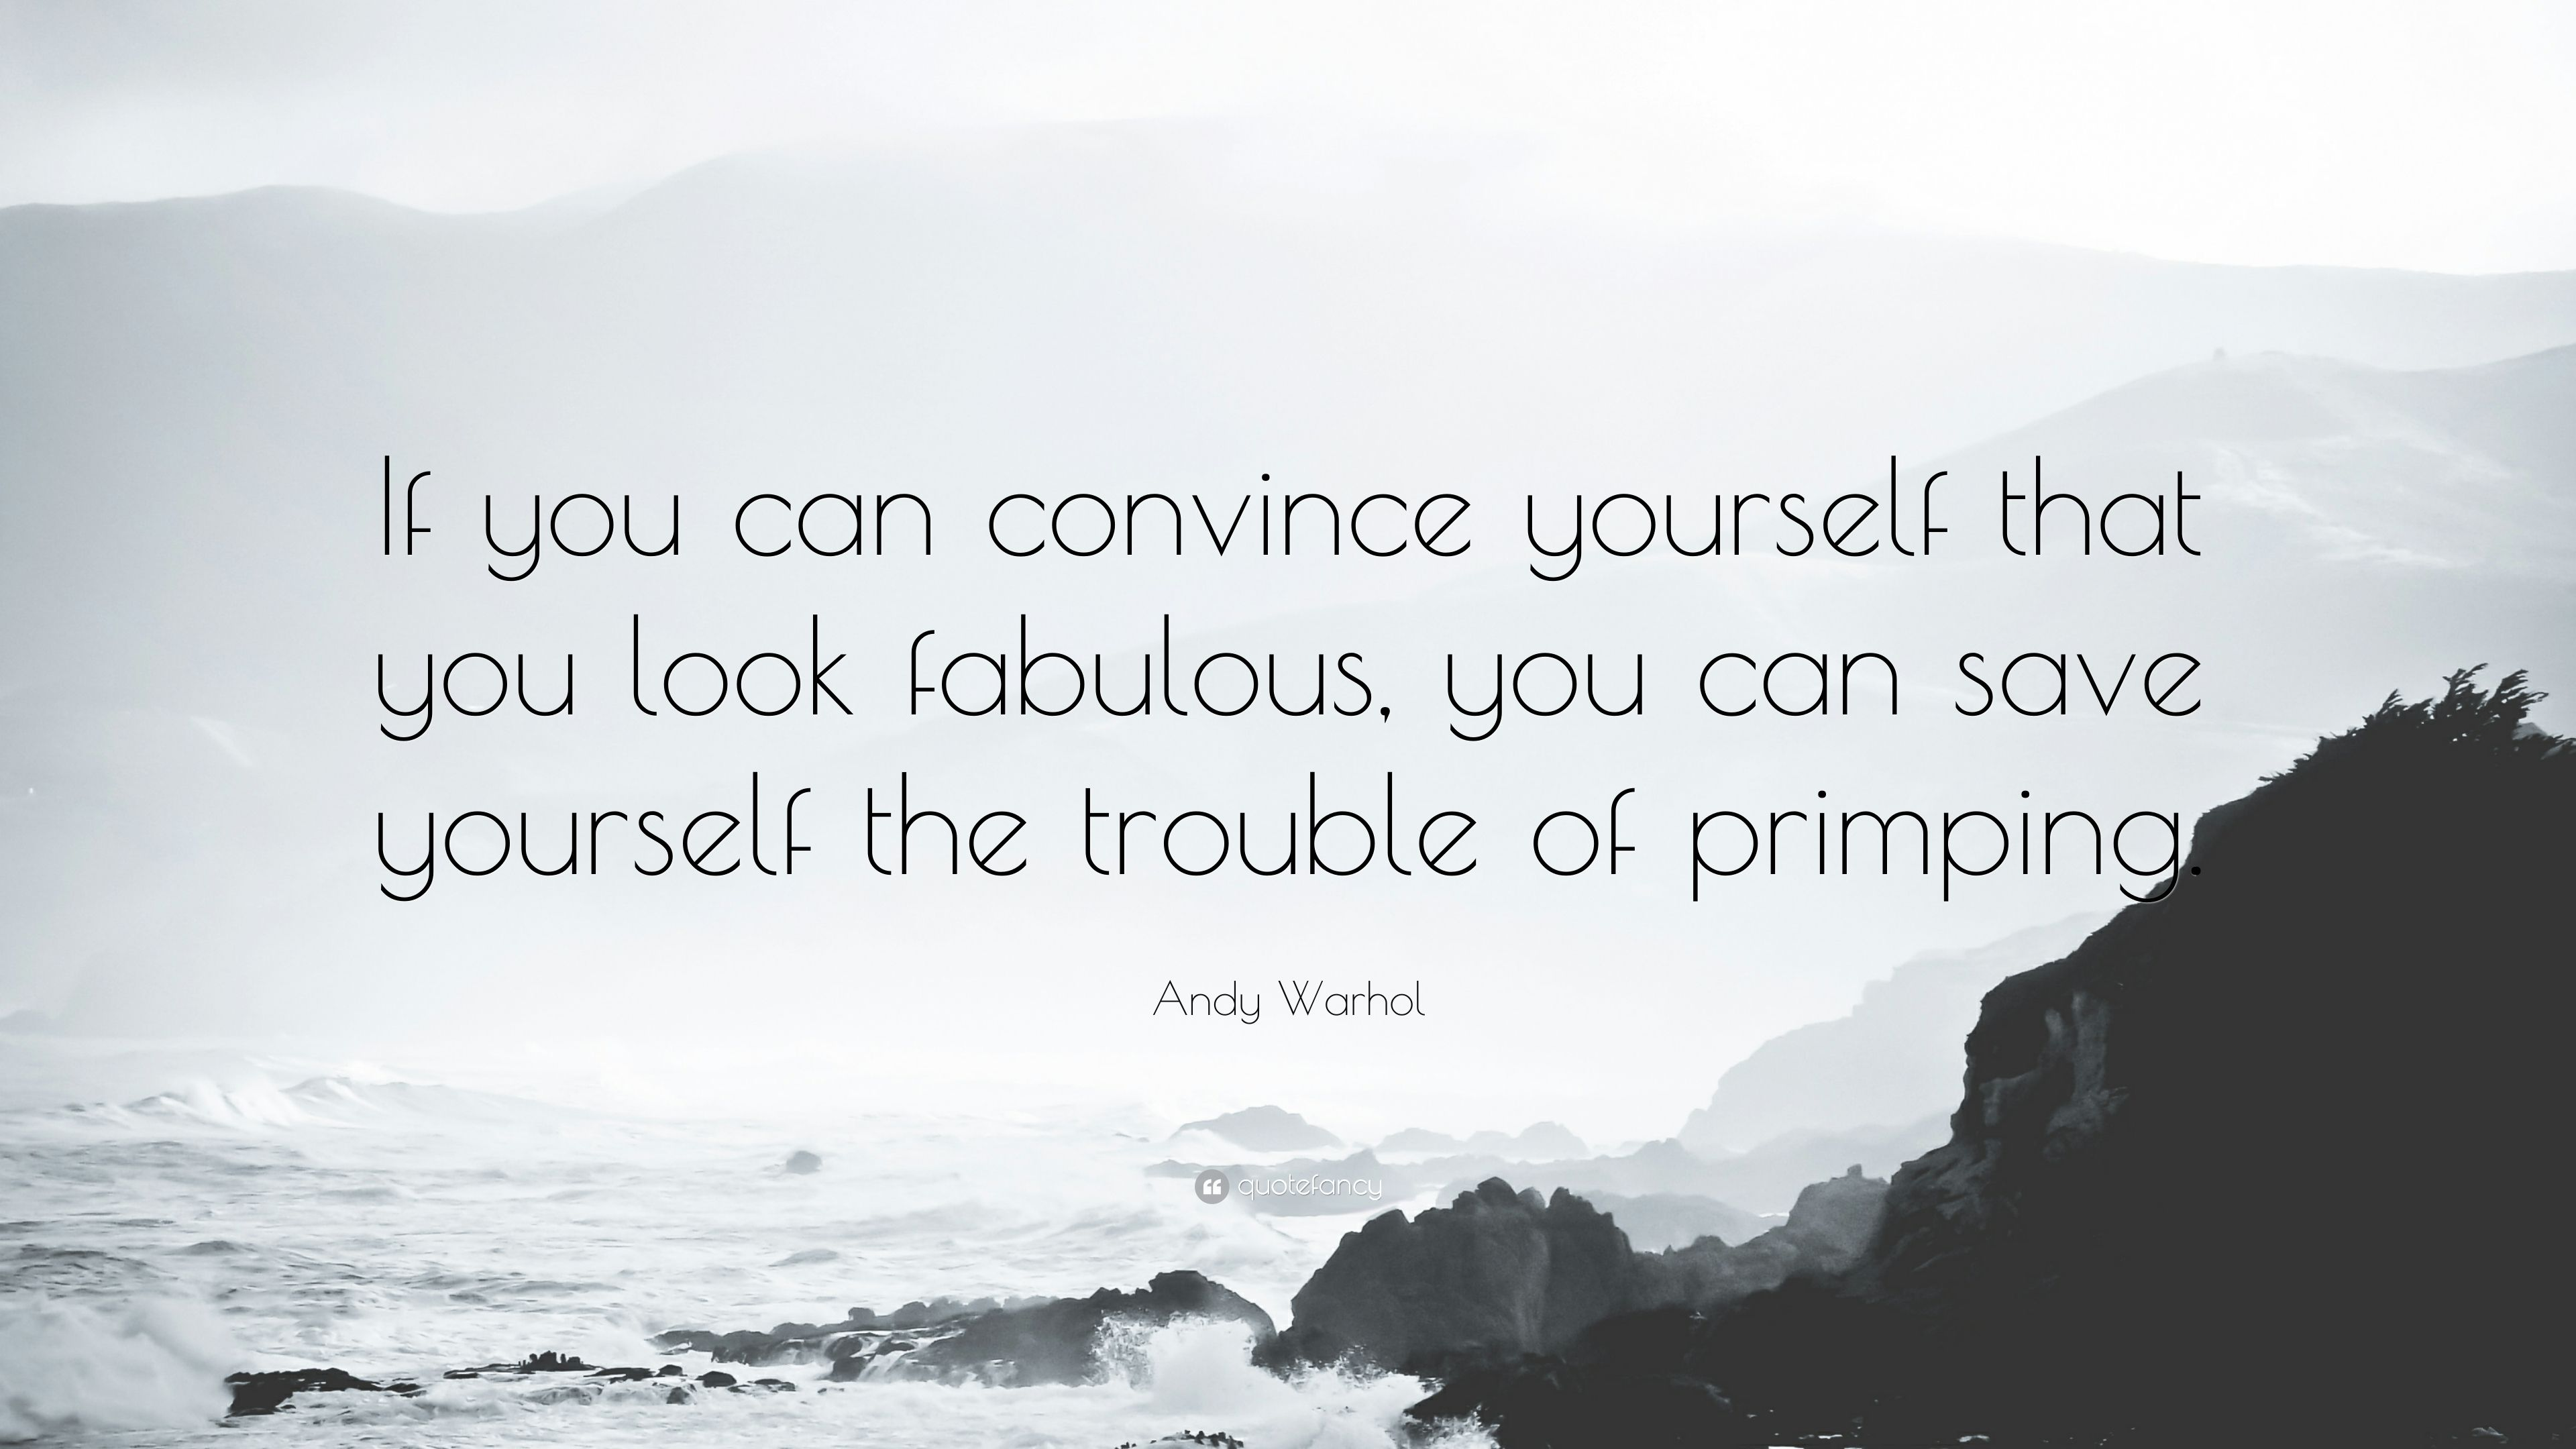 pics How to Convince Yourself That You Can Do Something